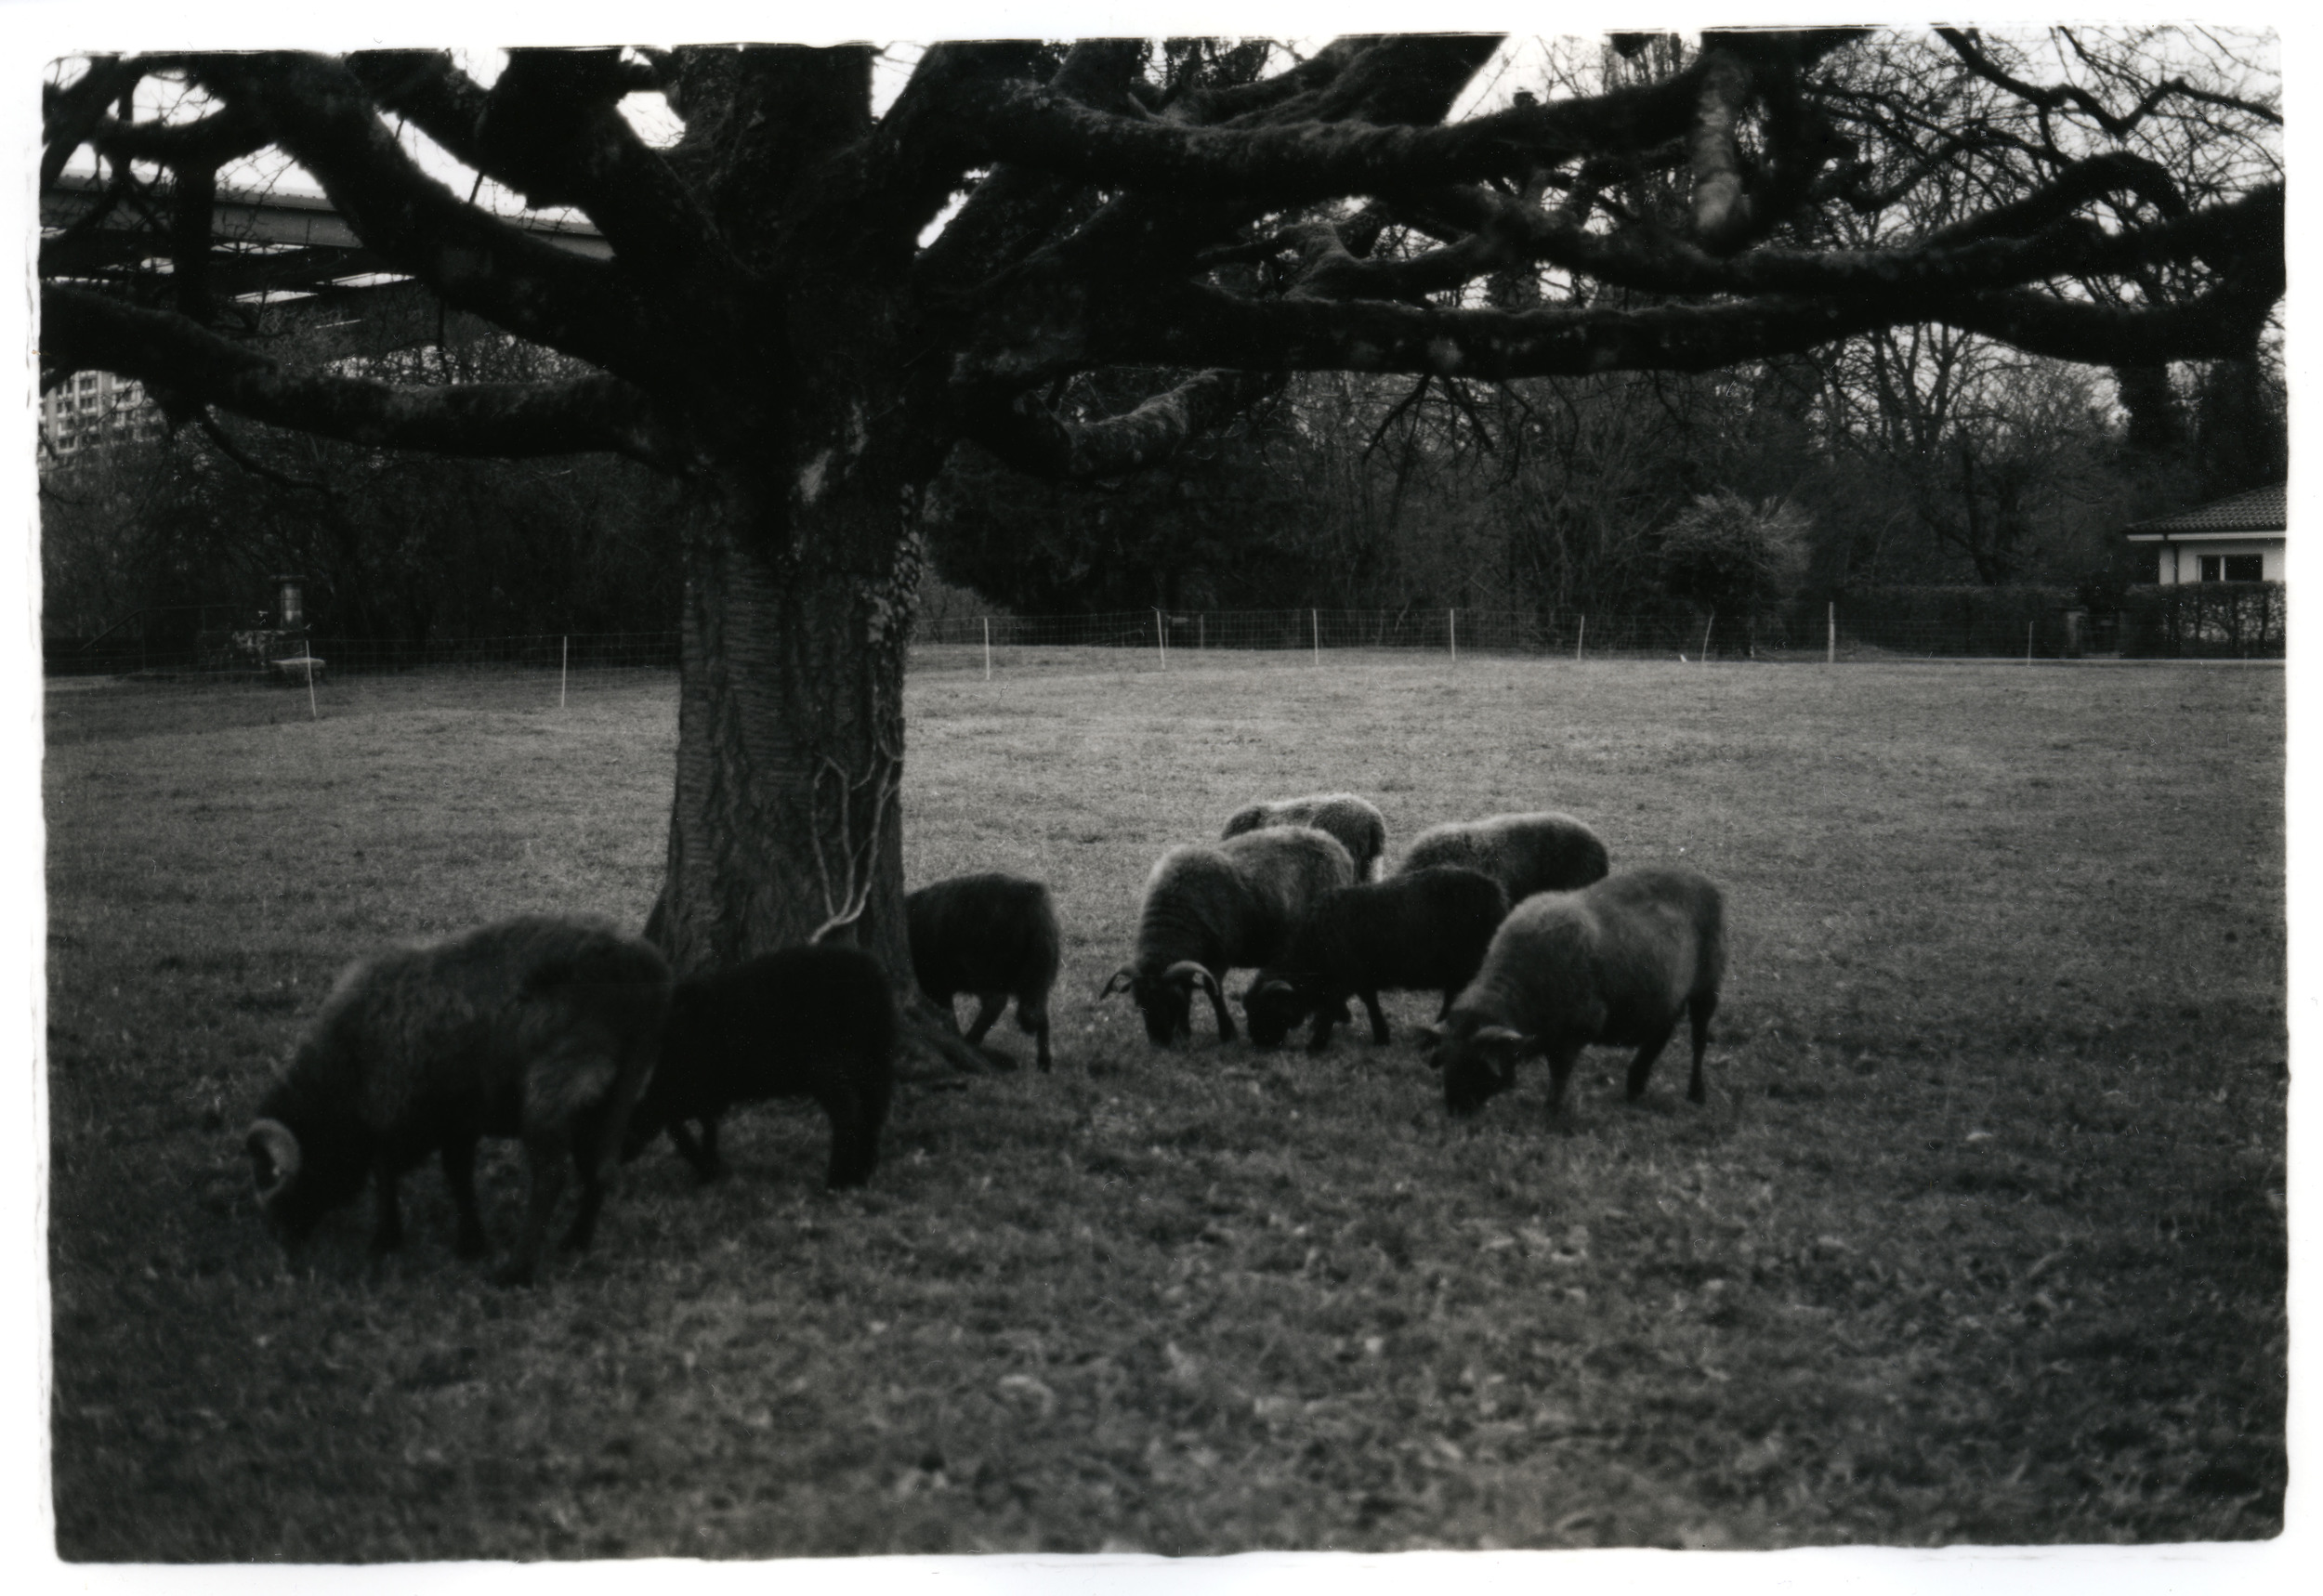 Sheep    Silver Gelatin Print, Switzerland, 2014